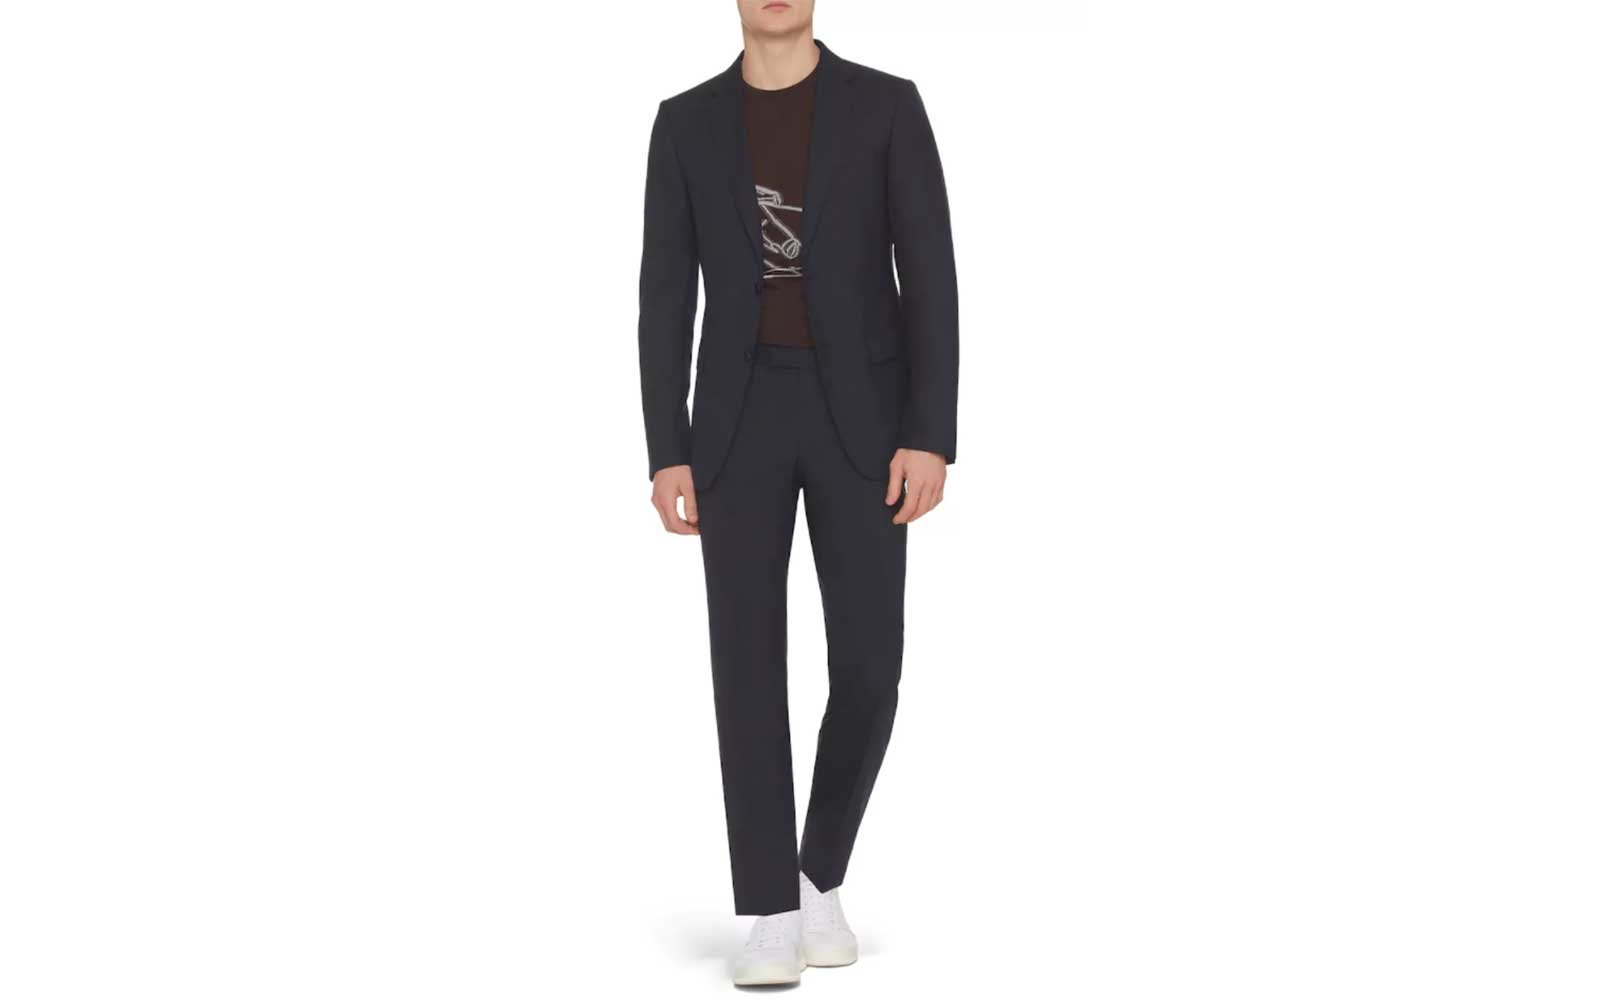 Z Zegna travel suit